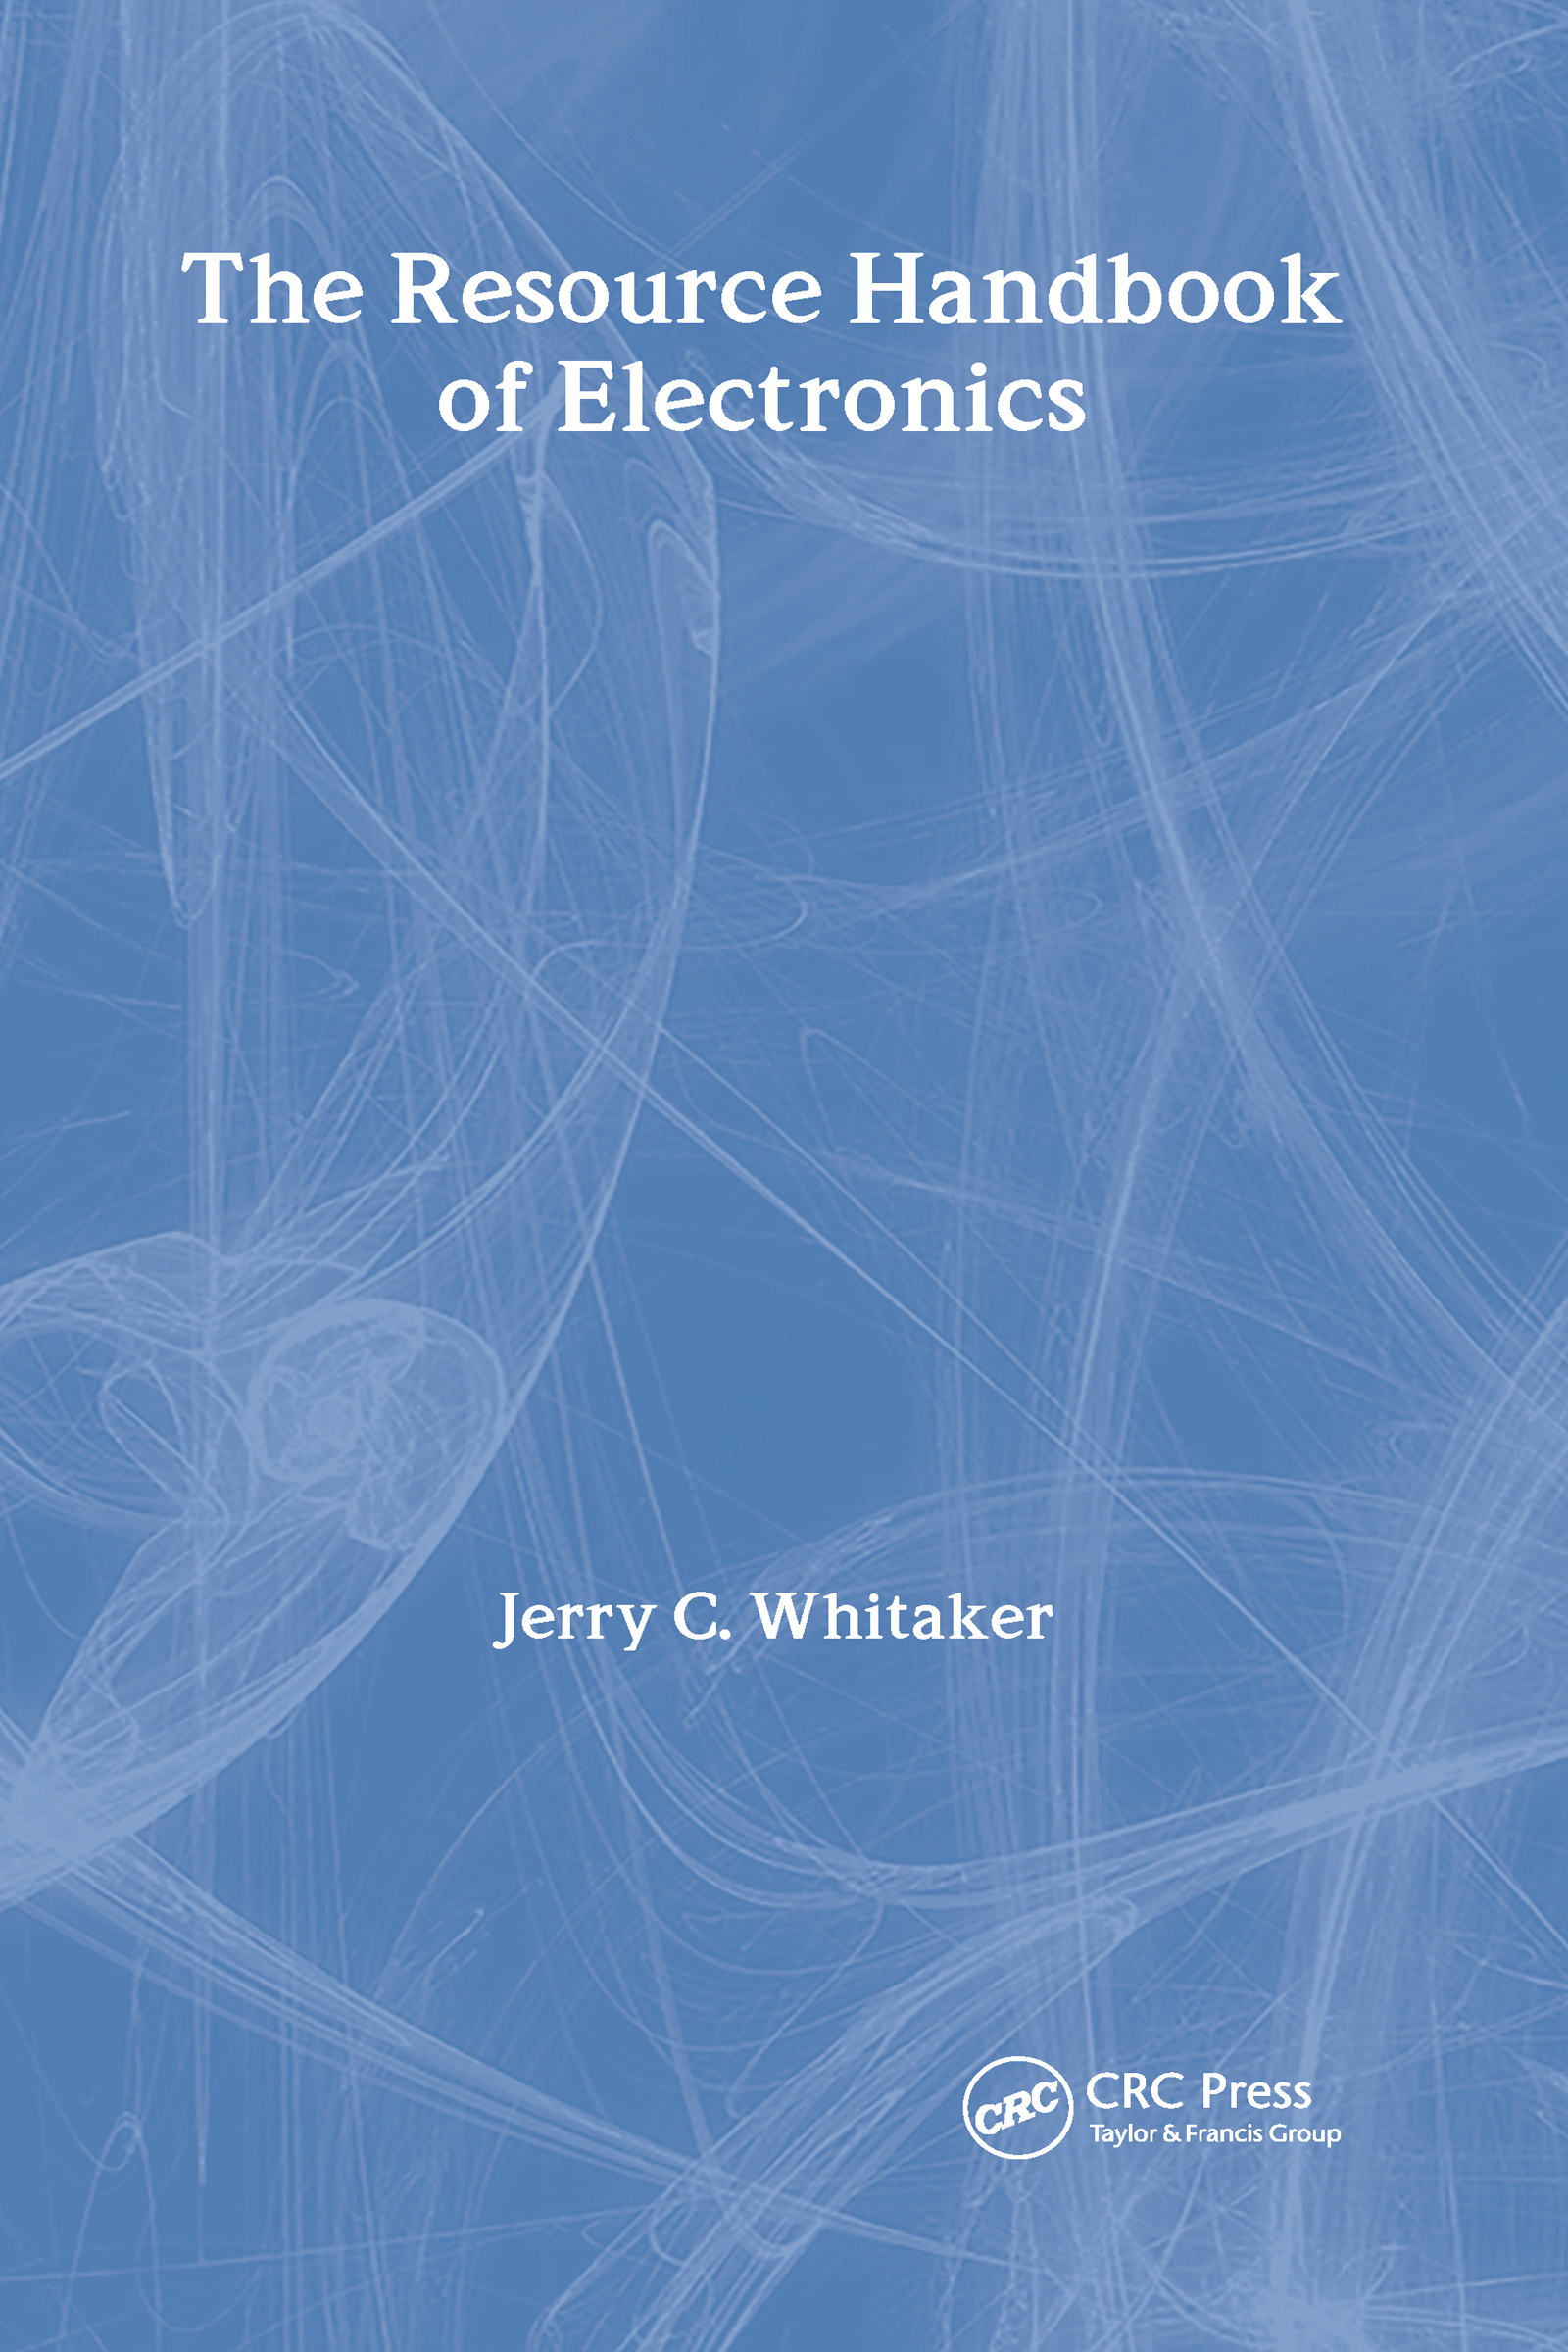 The Resource Handbook of Electronics: 1st Edition (Hardback) book cover